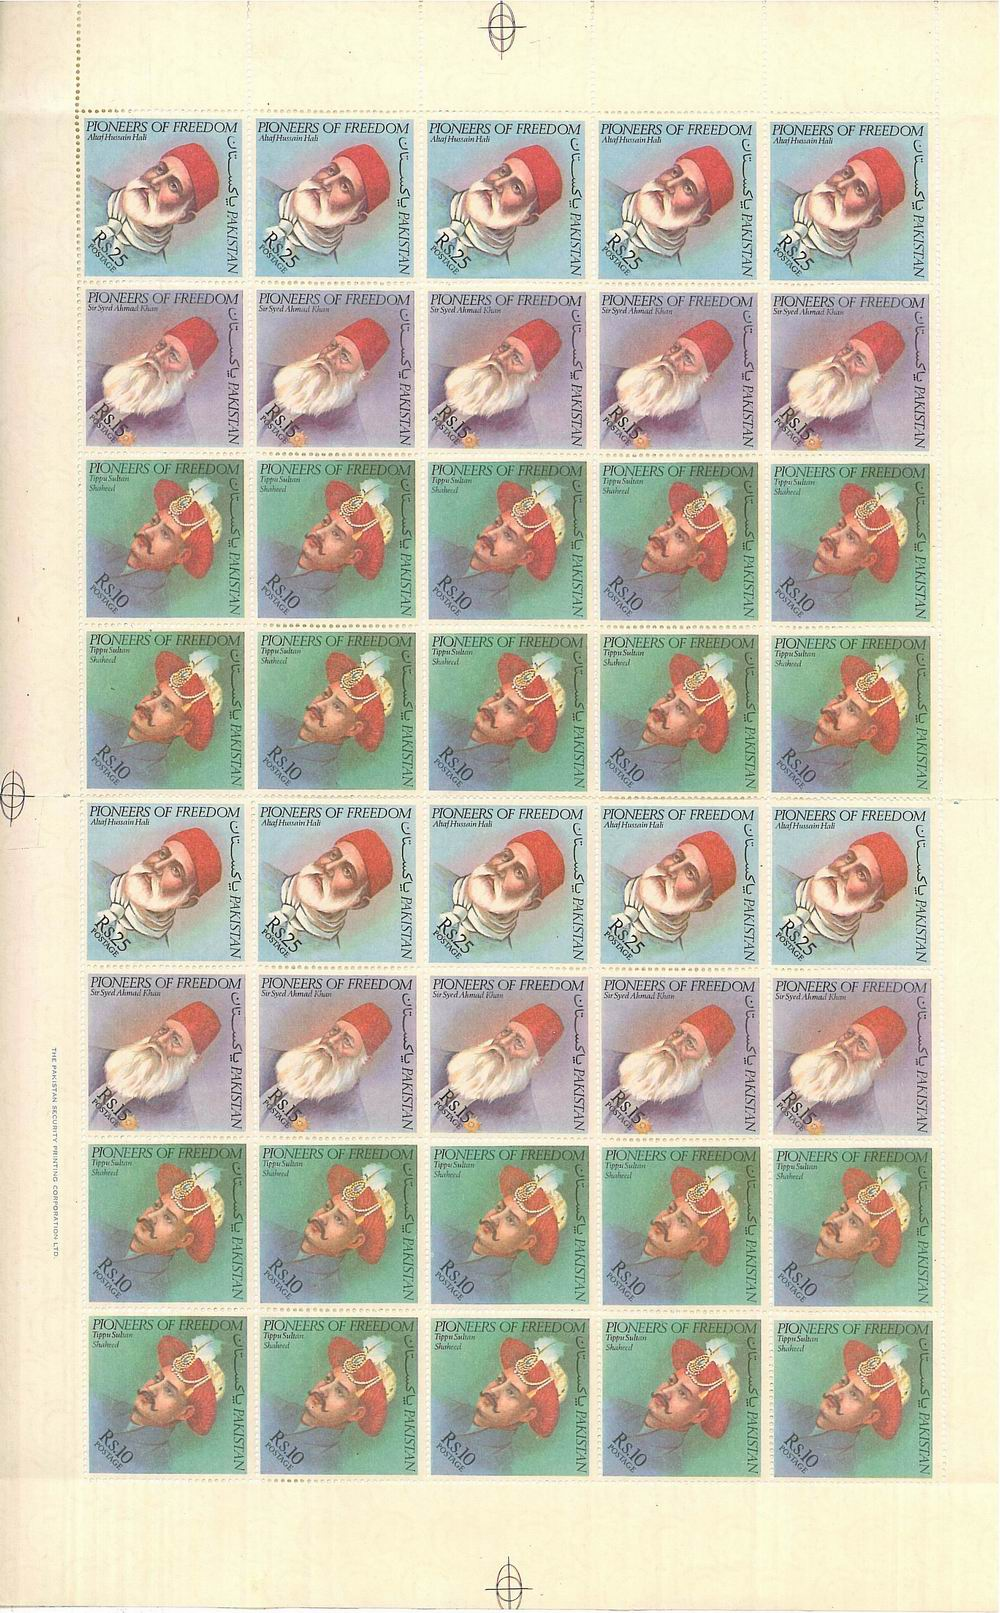 Pakistan Stamps Sheet 1979 Pioneer Of Freedom Tipu Sultan MNH